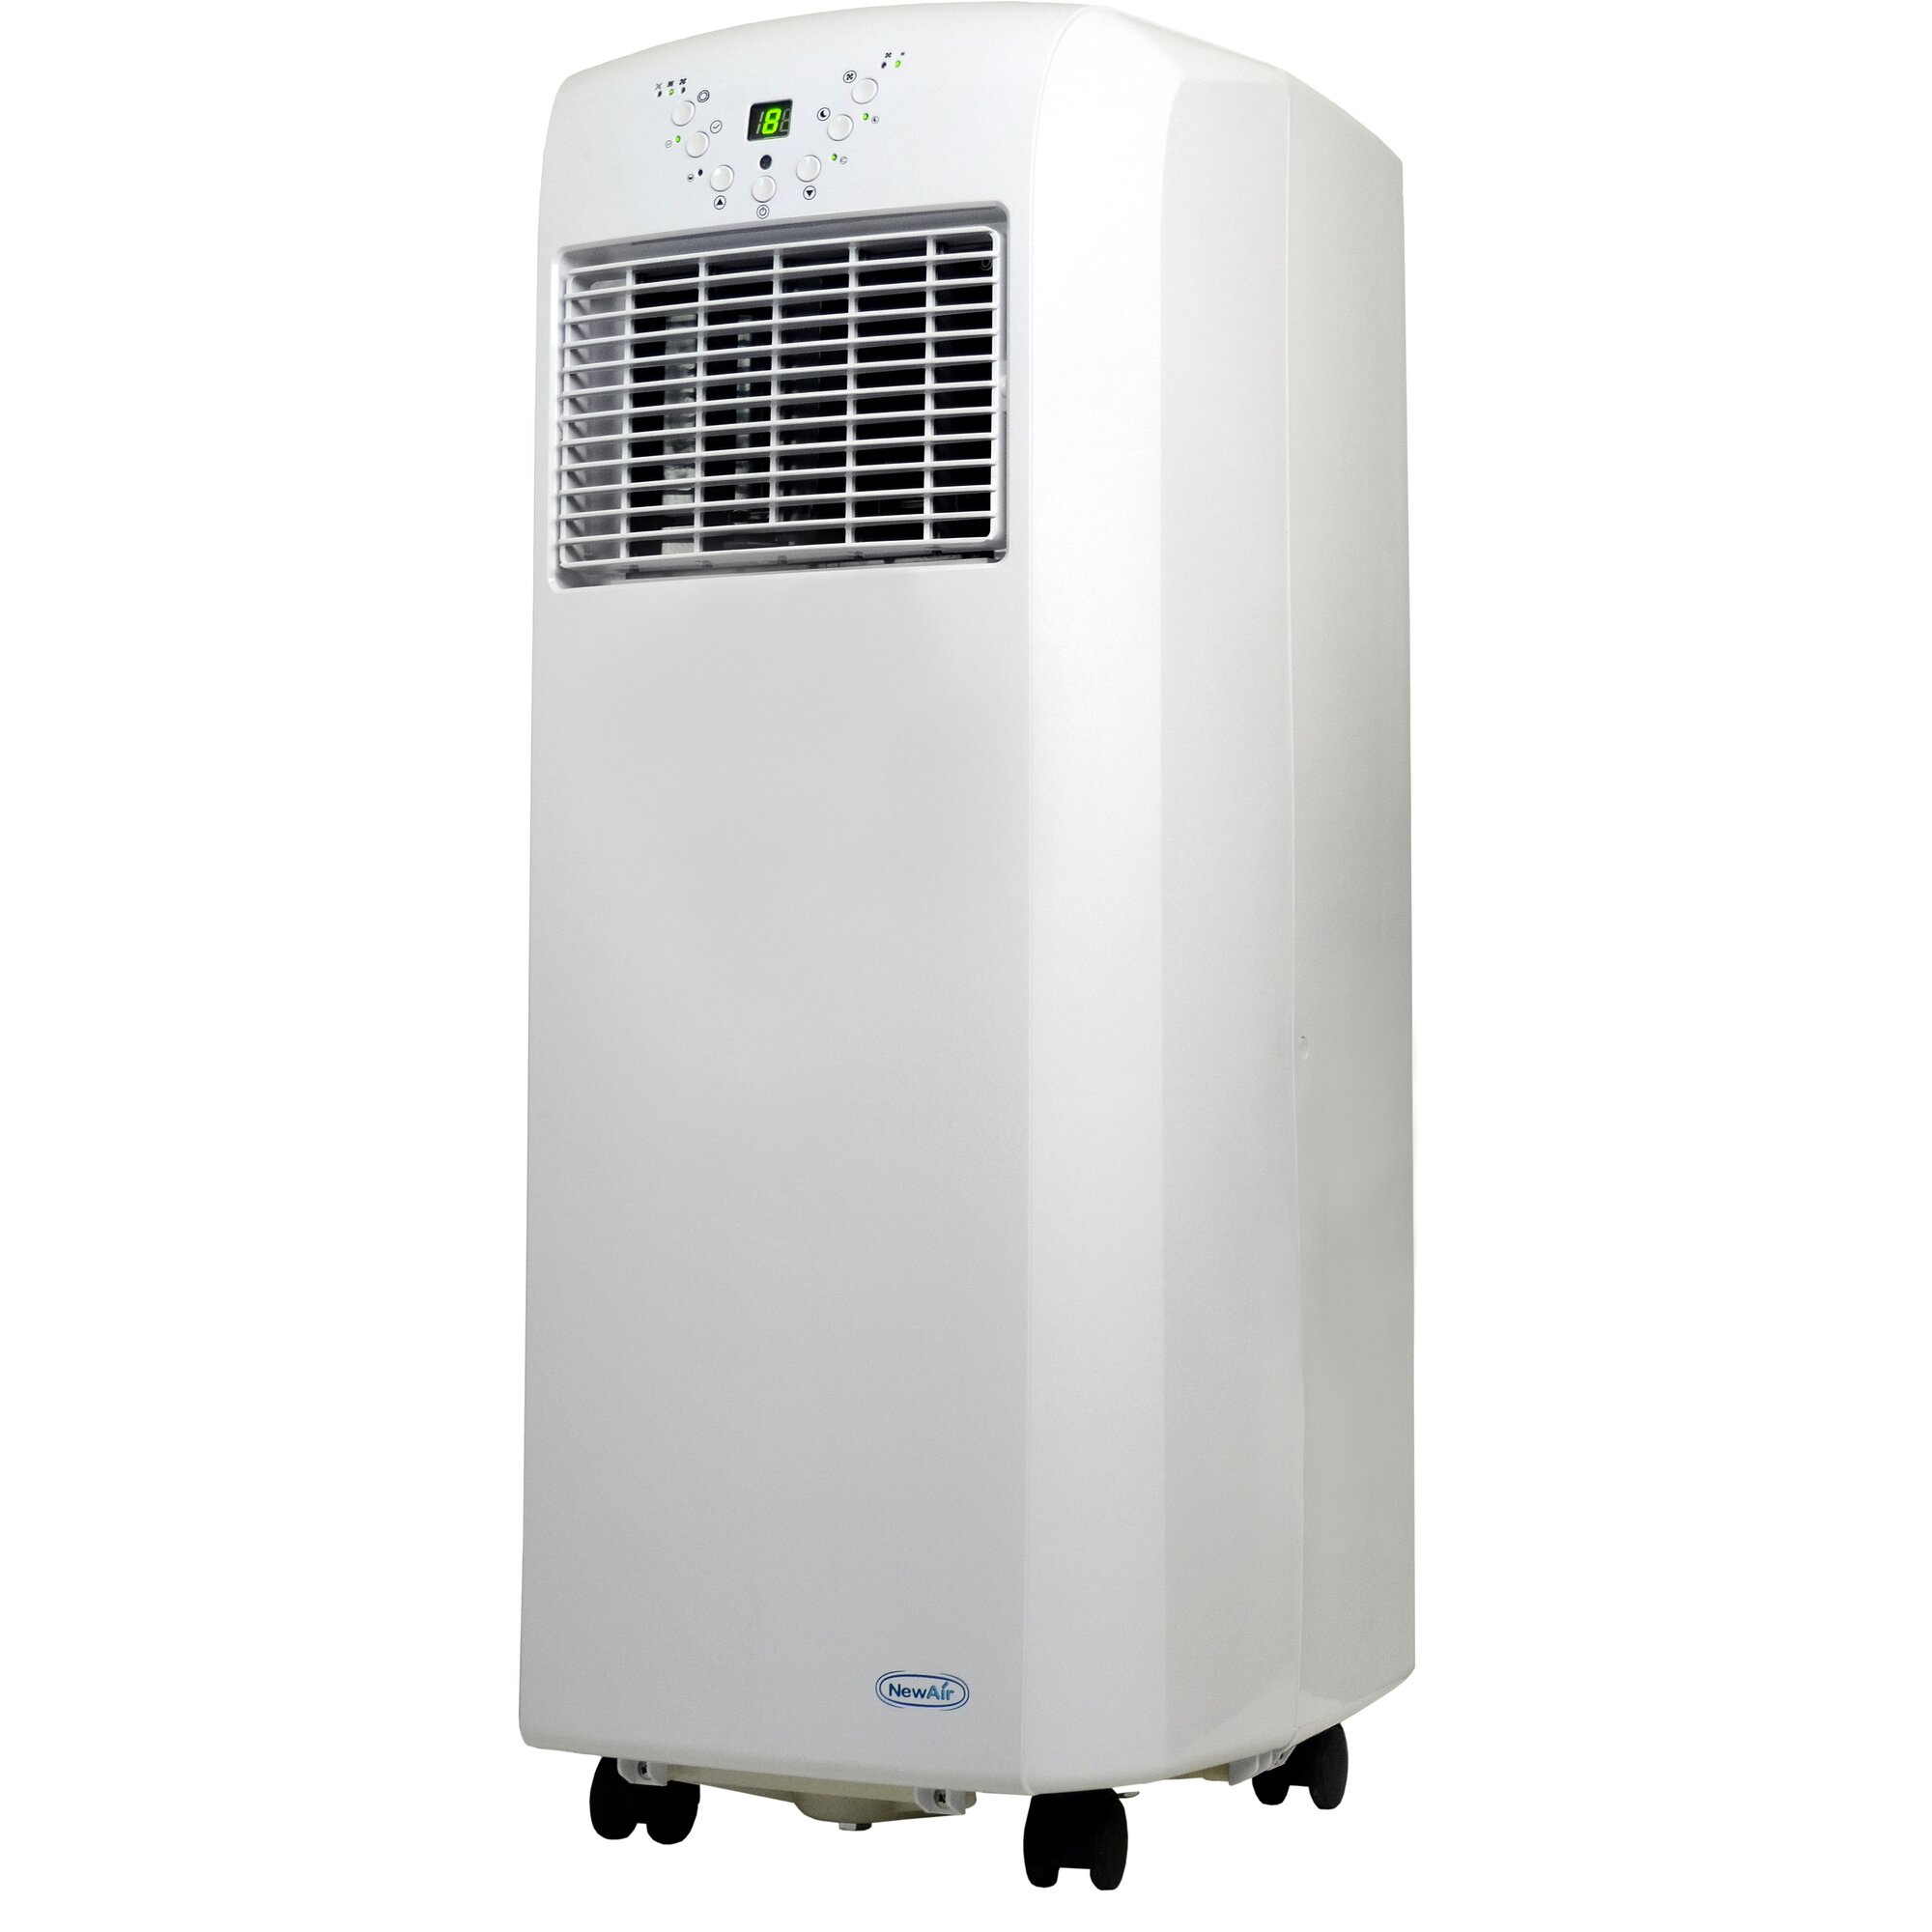 #61614B NewAir 10 000 BTU Portable Air Conditioner With Remote  Most Recent 13510 Portable Air Conditioner Ratings image with 2000x2000 px on helpvideos.info - Air Conditioners, Air Coolers and more